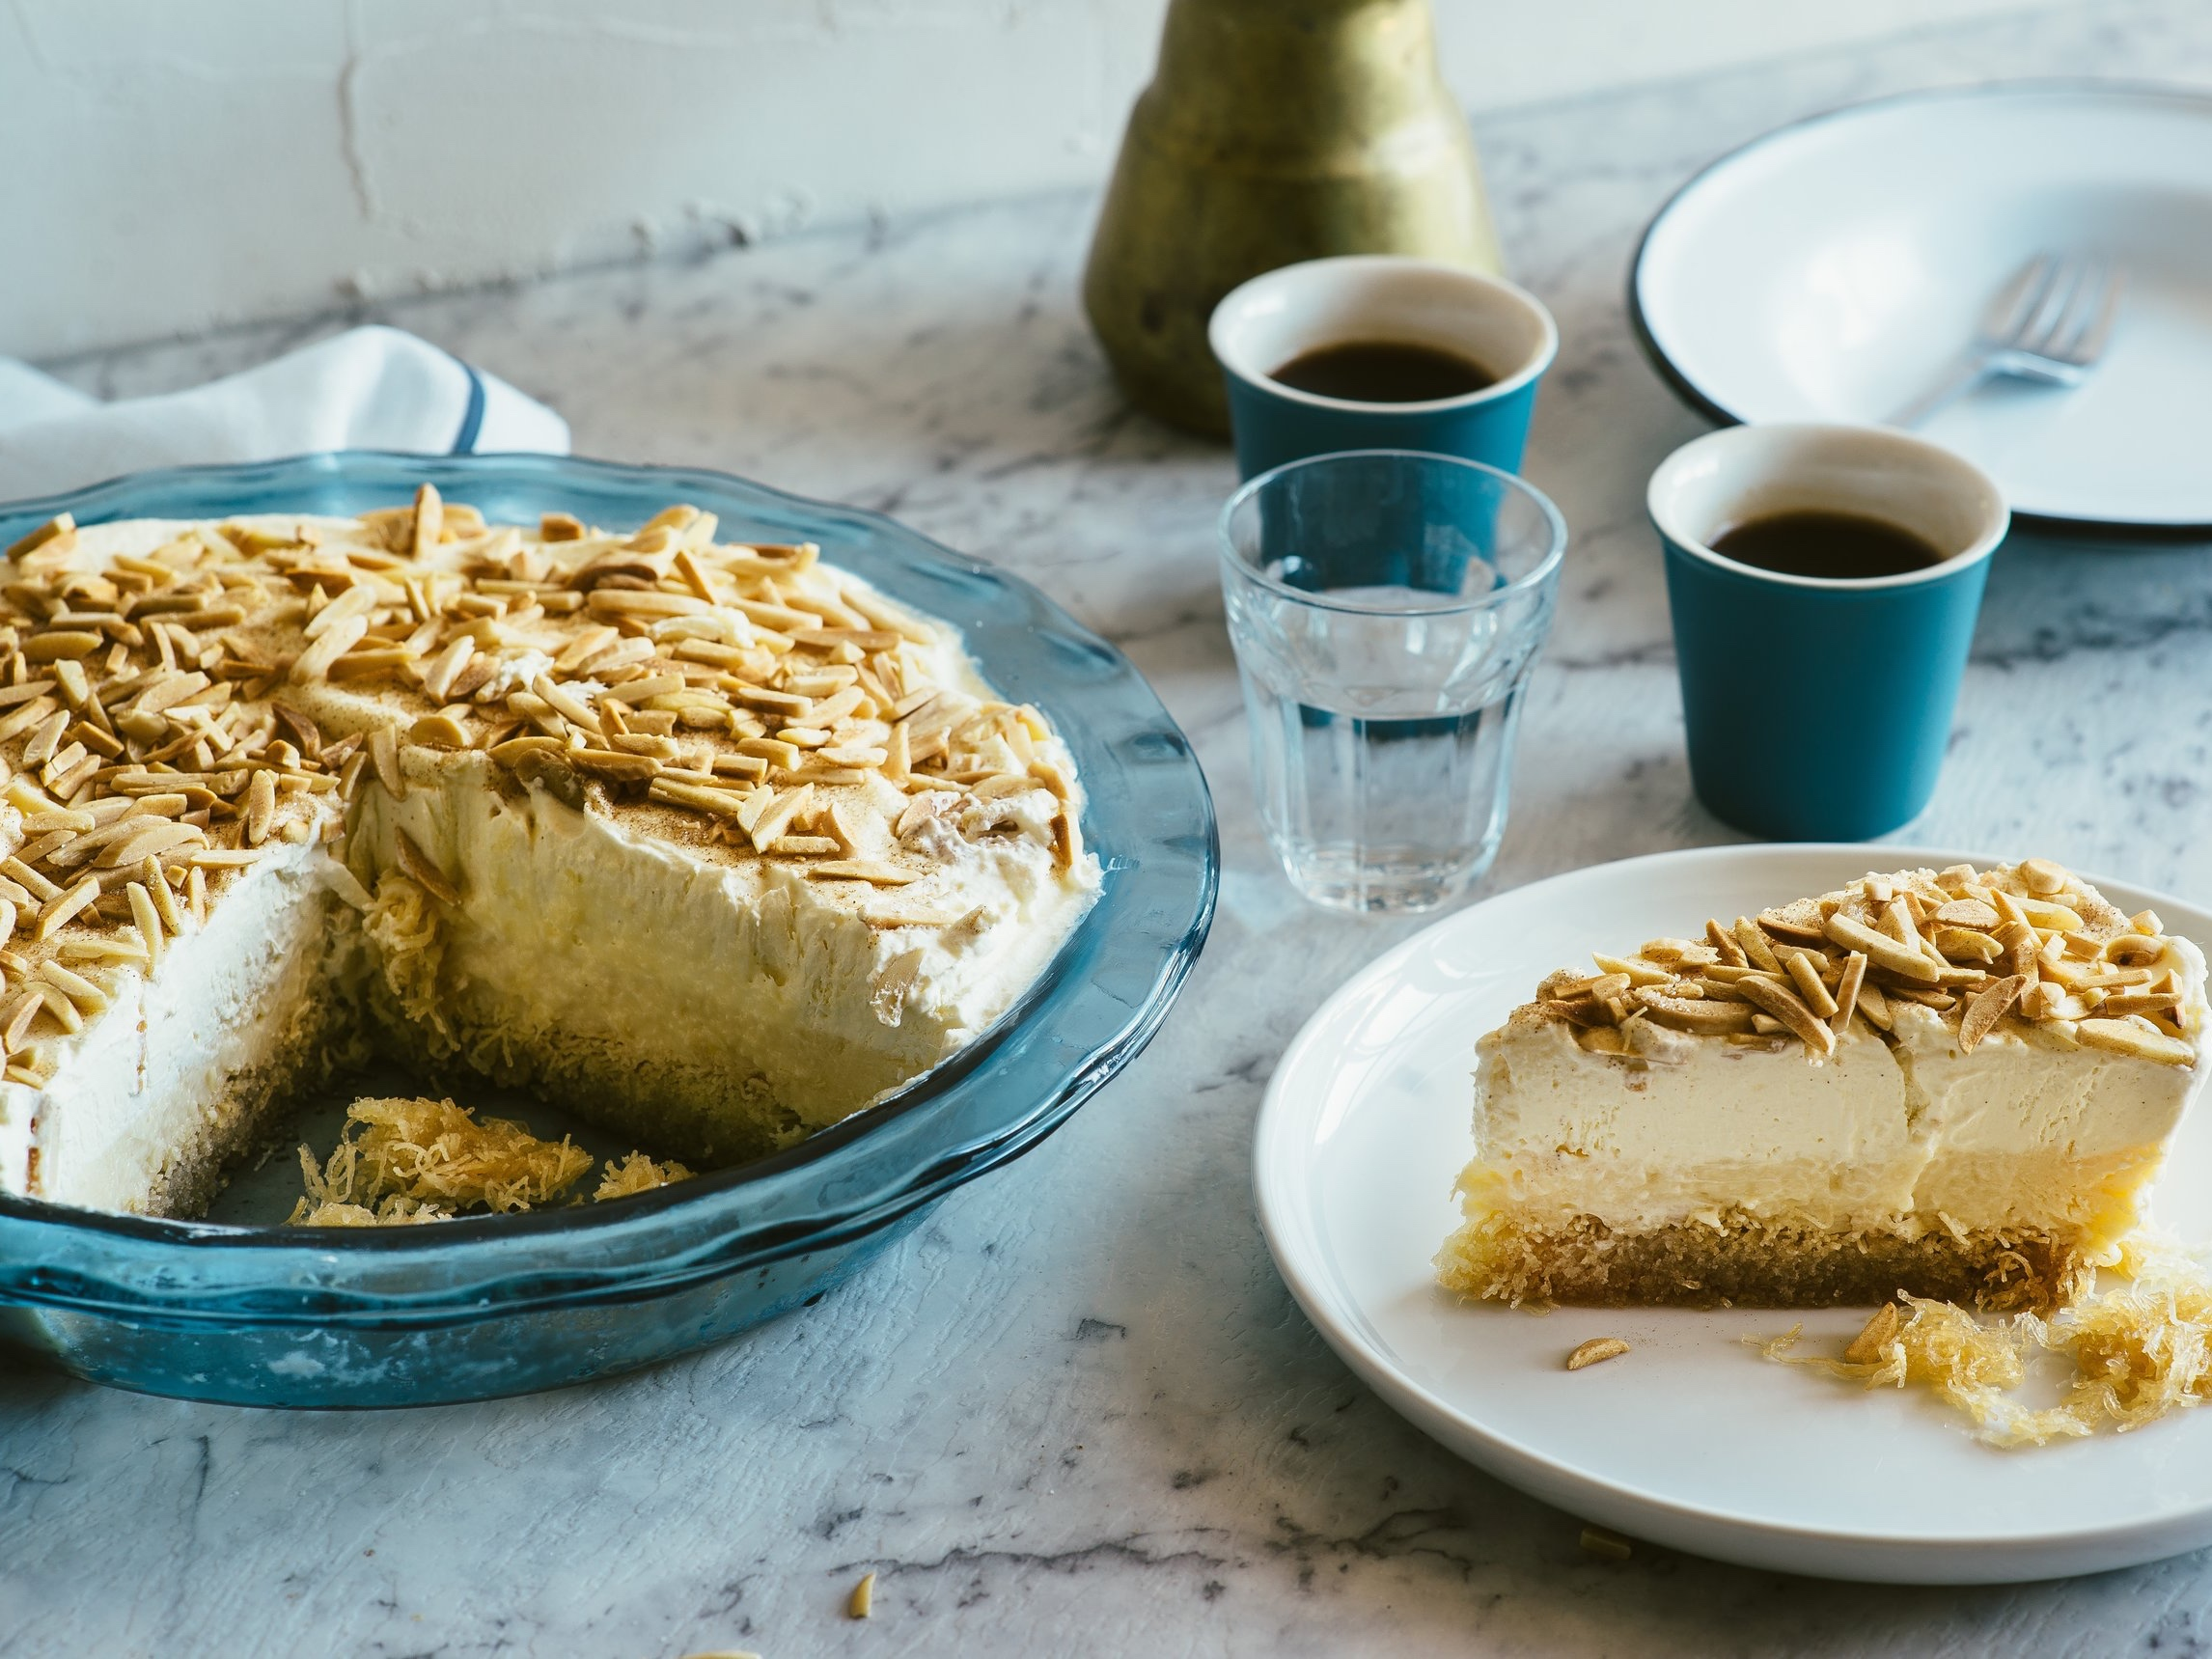 Crema Kataifi - A glorious combination of flavours and textures, Kataifi Pastry, custard and cream - this Kataifi Pastry recipe is one that won't disappoint.